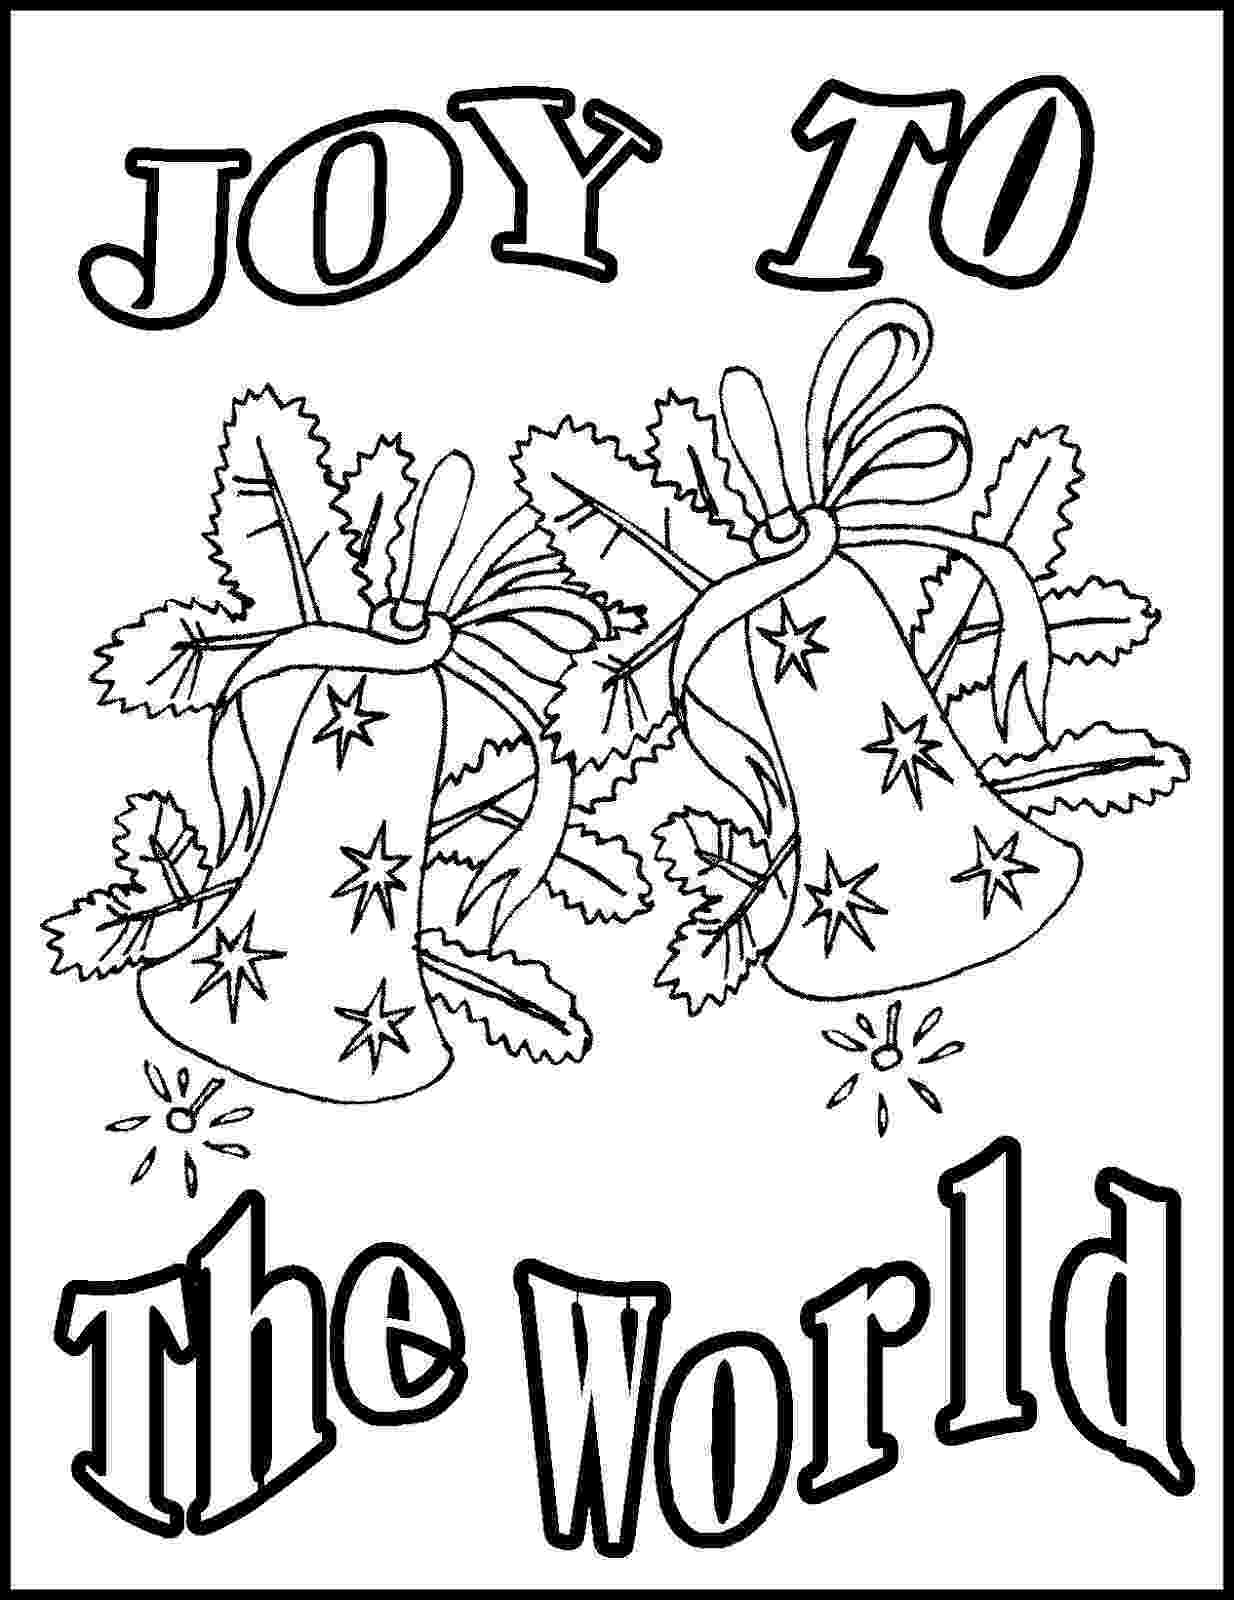 christmas coloring religious religious christmas coloring pages getcoloringpagescom religious christmas coloring